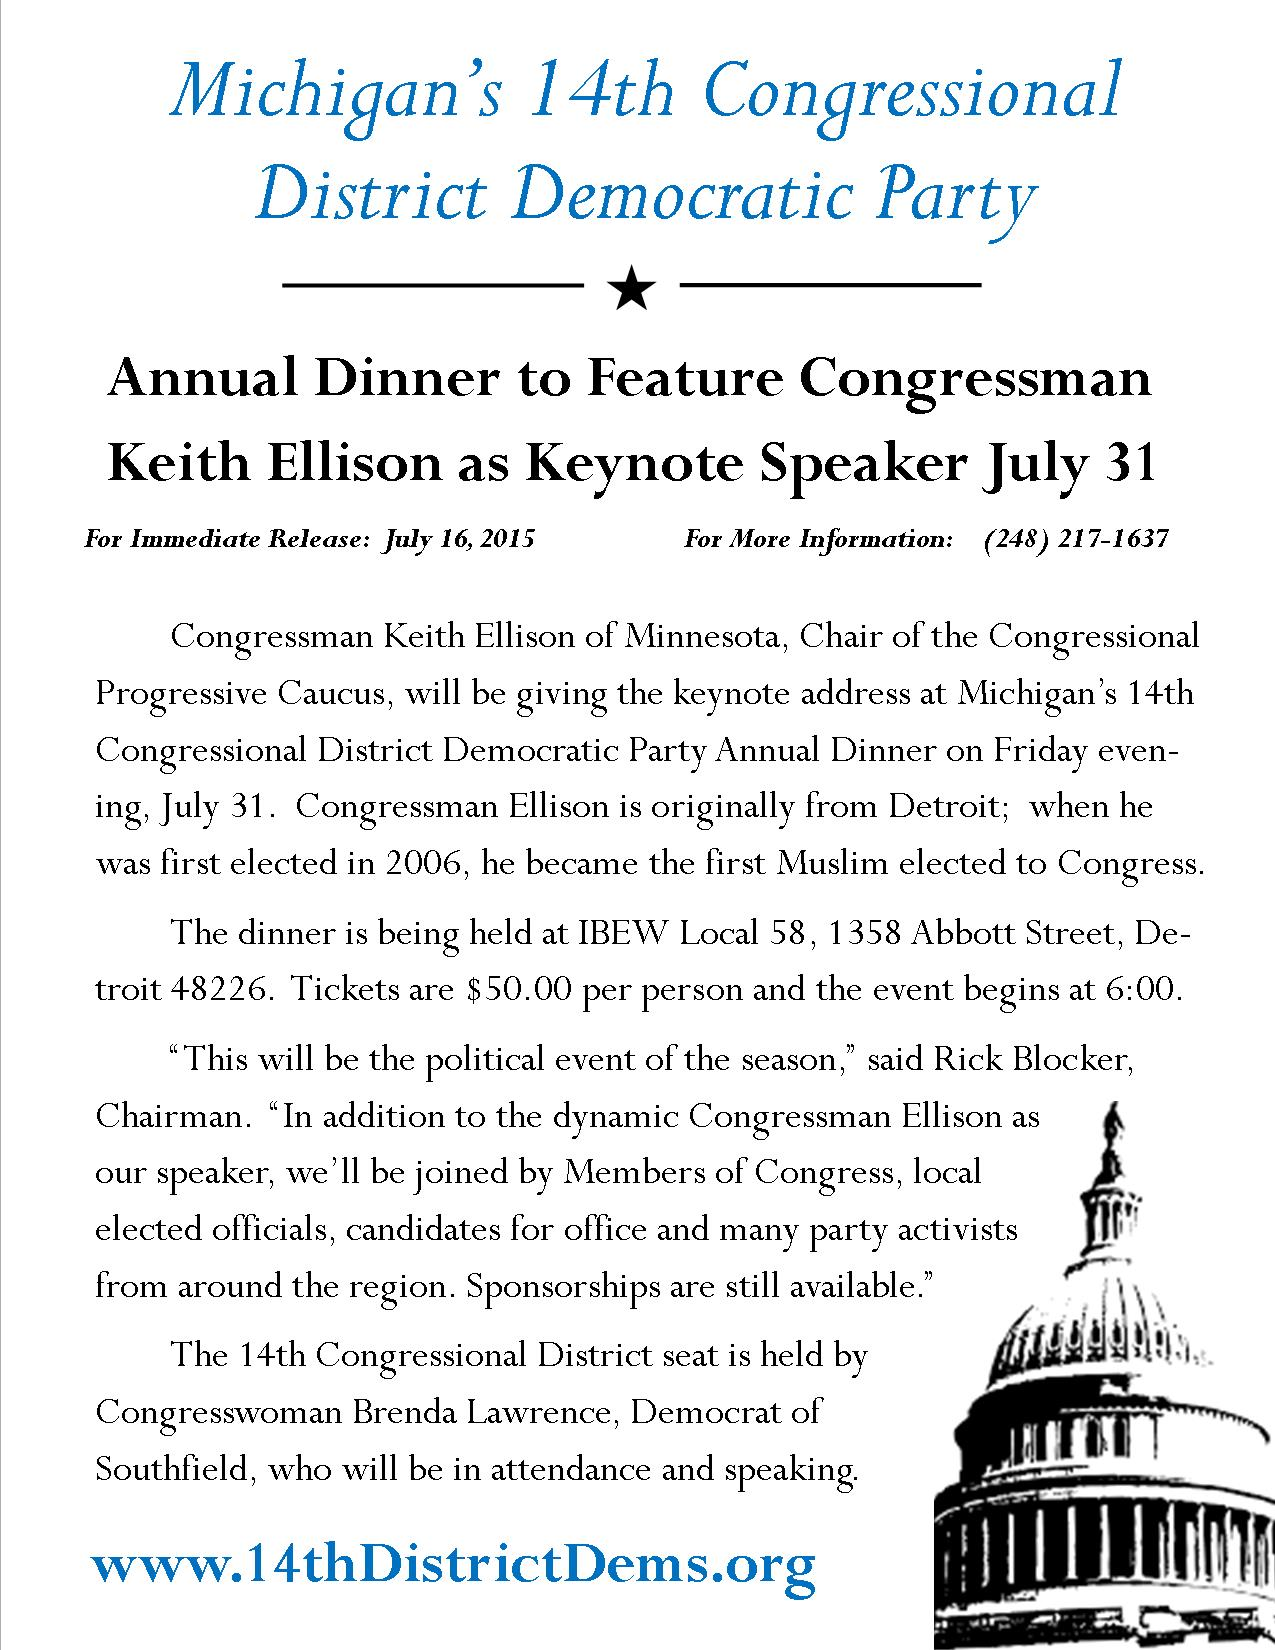 14th District Press Release - Dinner to Feature Congressman Keith Ellison as Keynote July 31